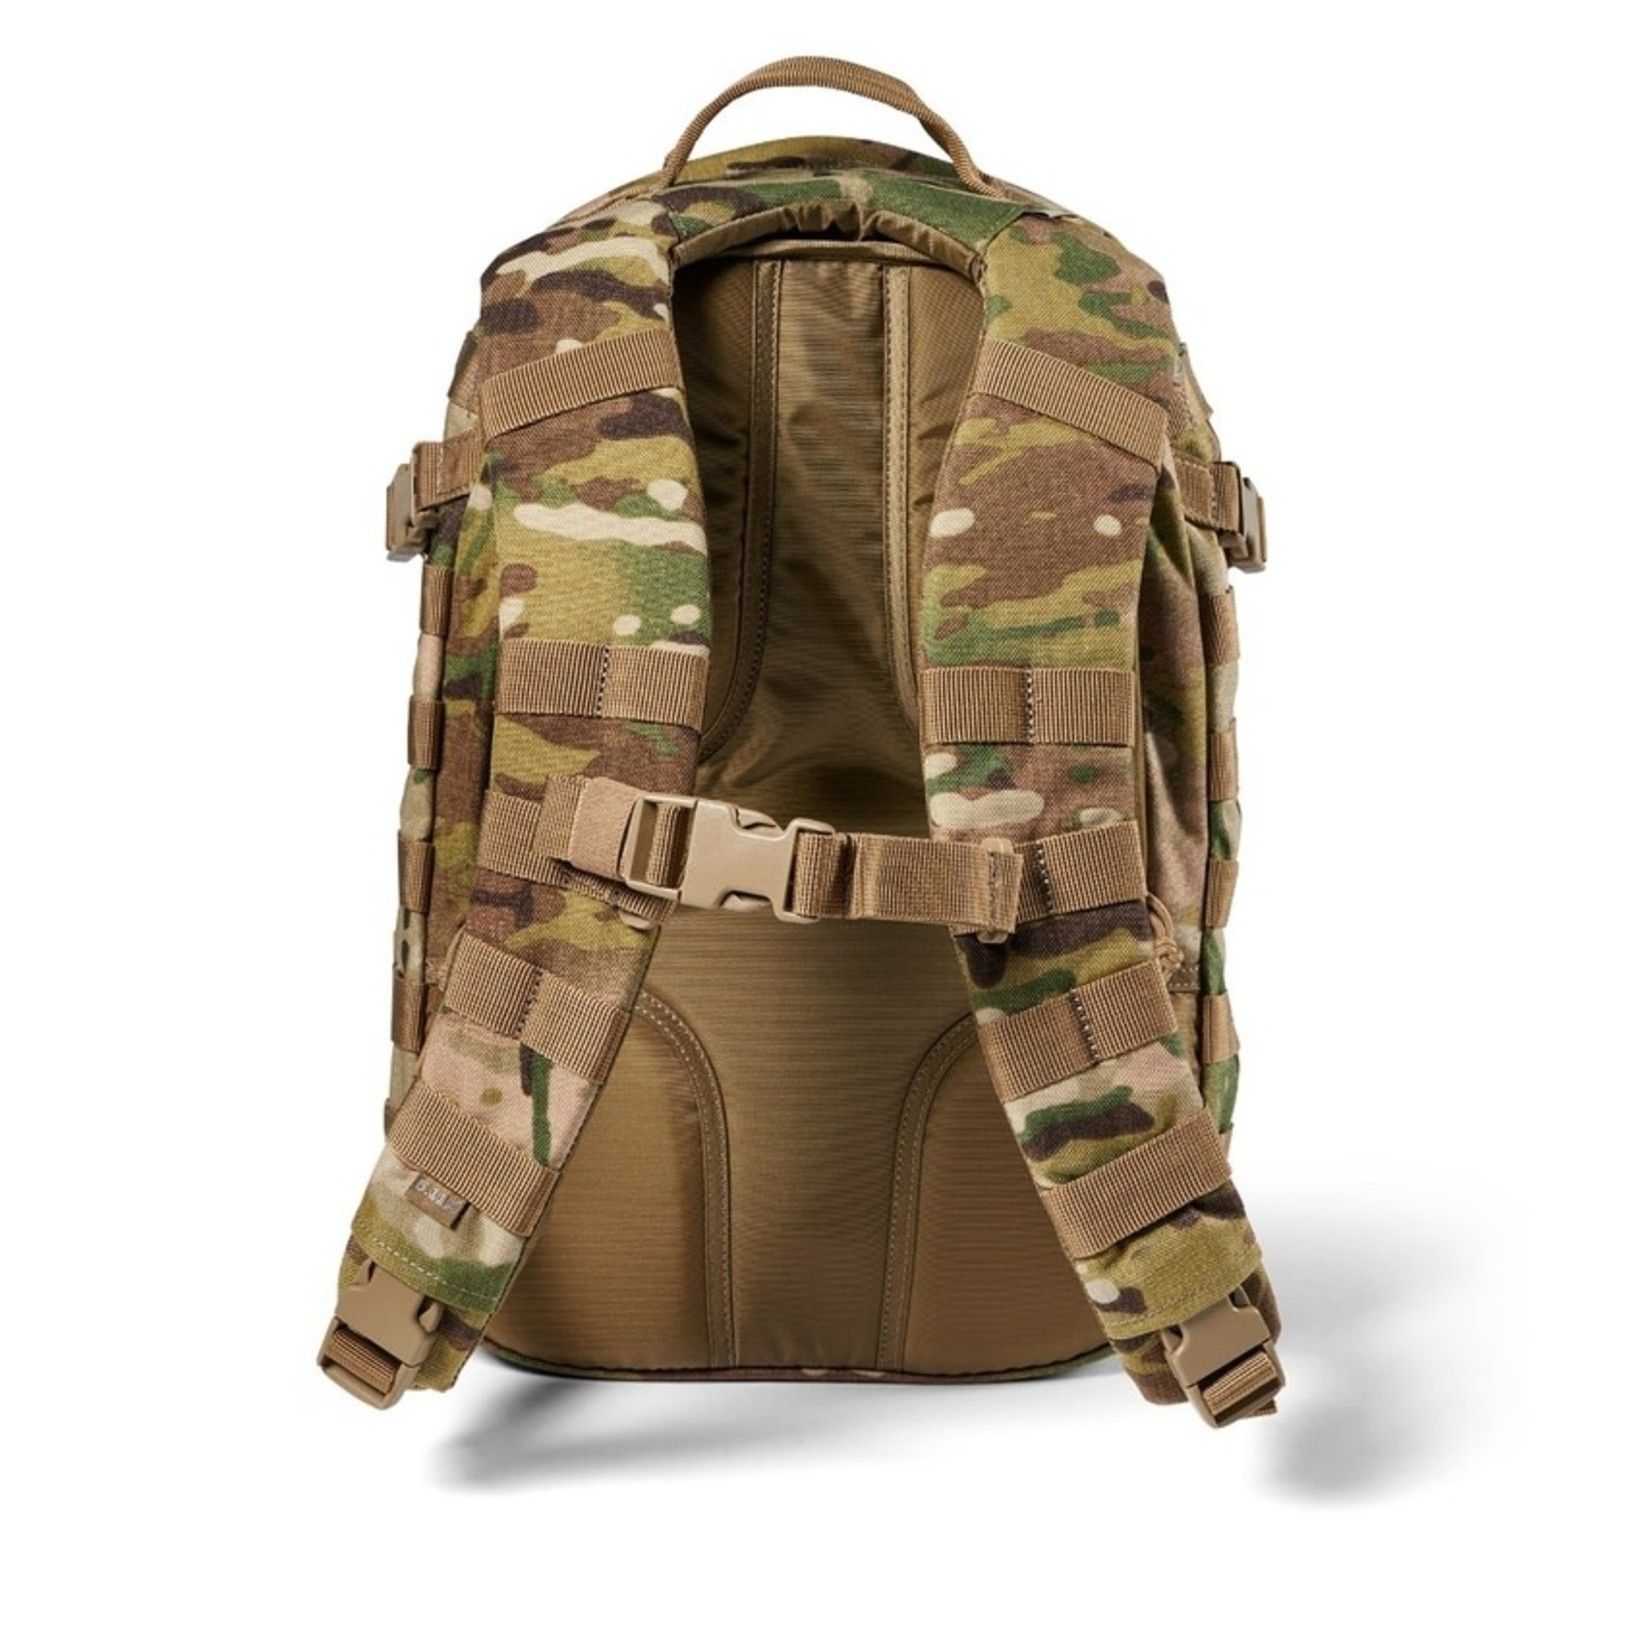 5.11 Tactical 5.11 Rush 12 2.0 Backpack Multicam